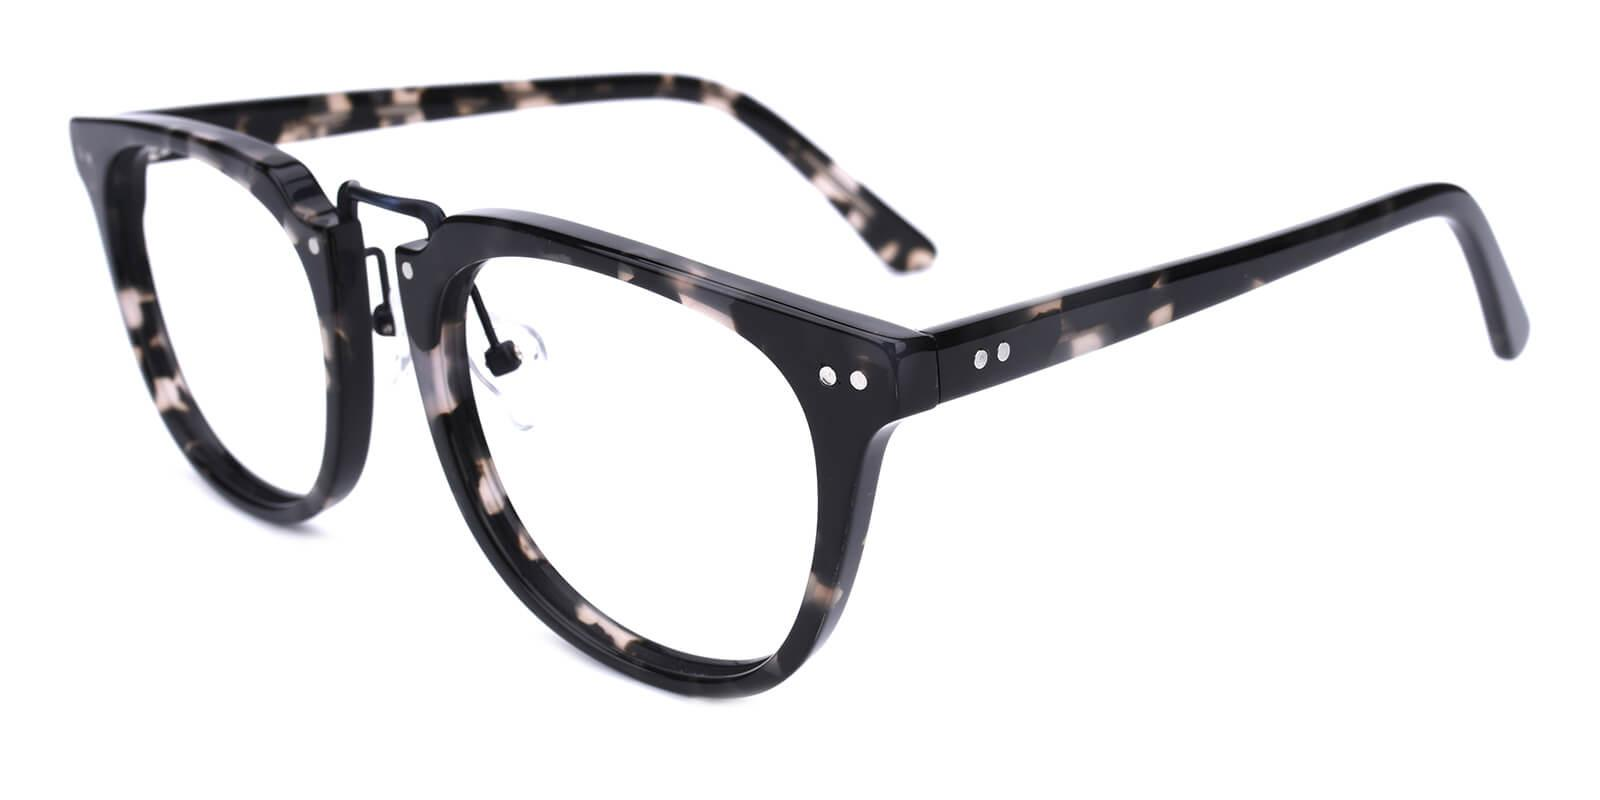 Crave-Pattern-Square-Acetate-Eyeglasses-additional1